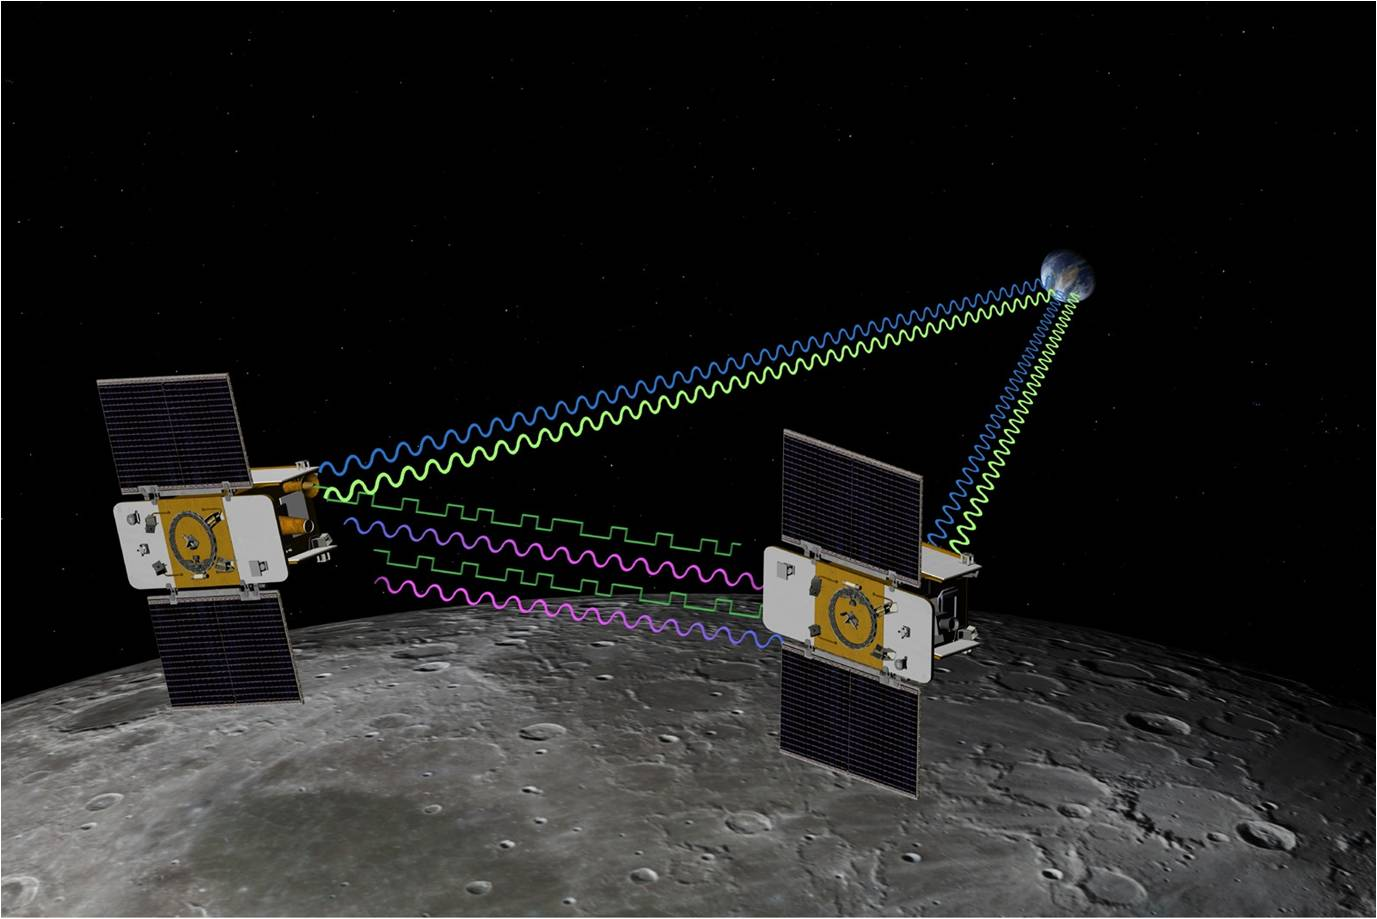 NASA sends GRAIL shaped beacon to the Moon - Bad Astronomy   Bad ... f306aca62f7